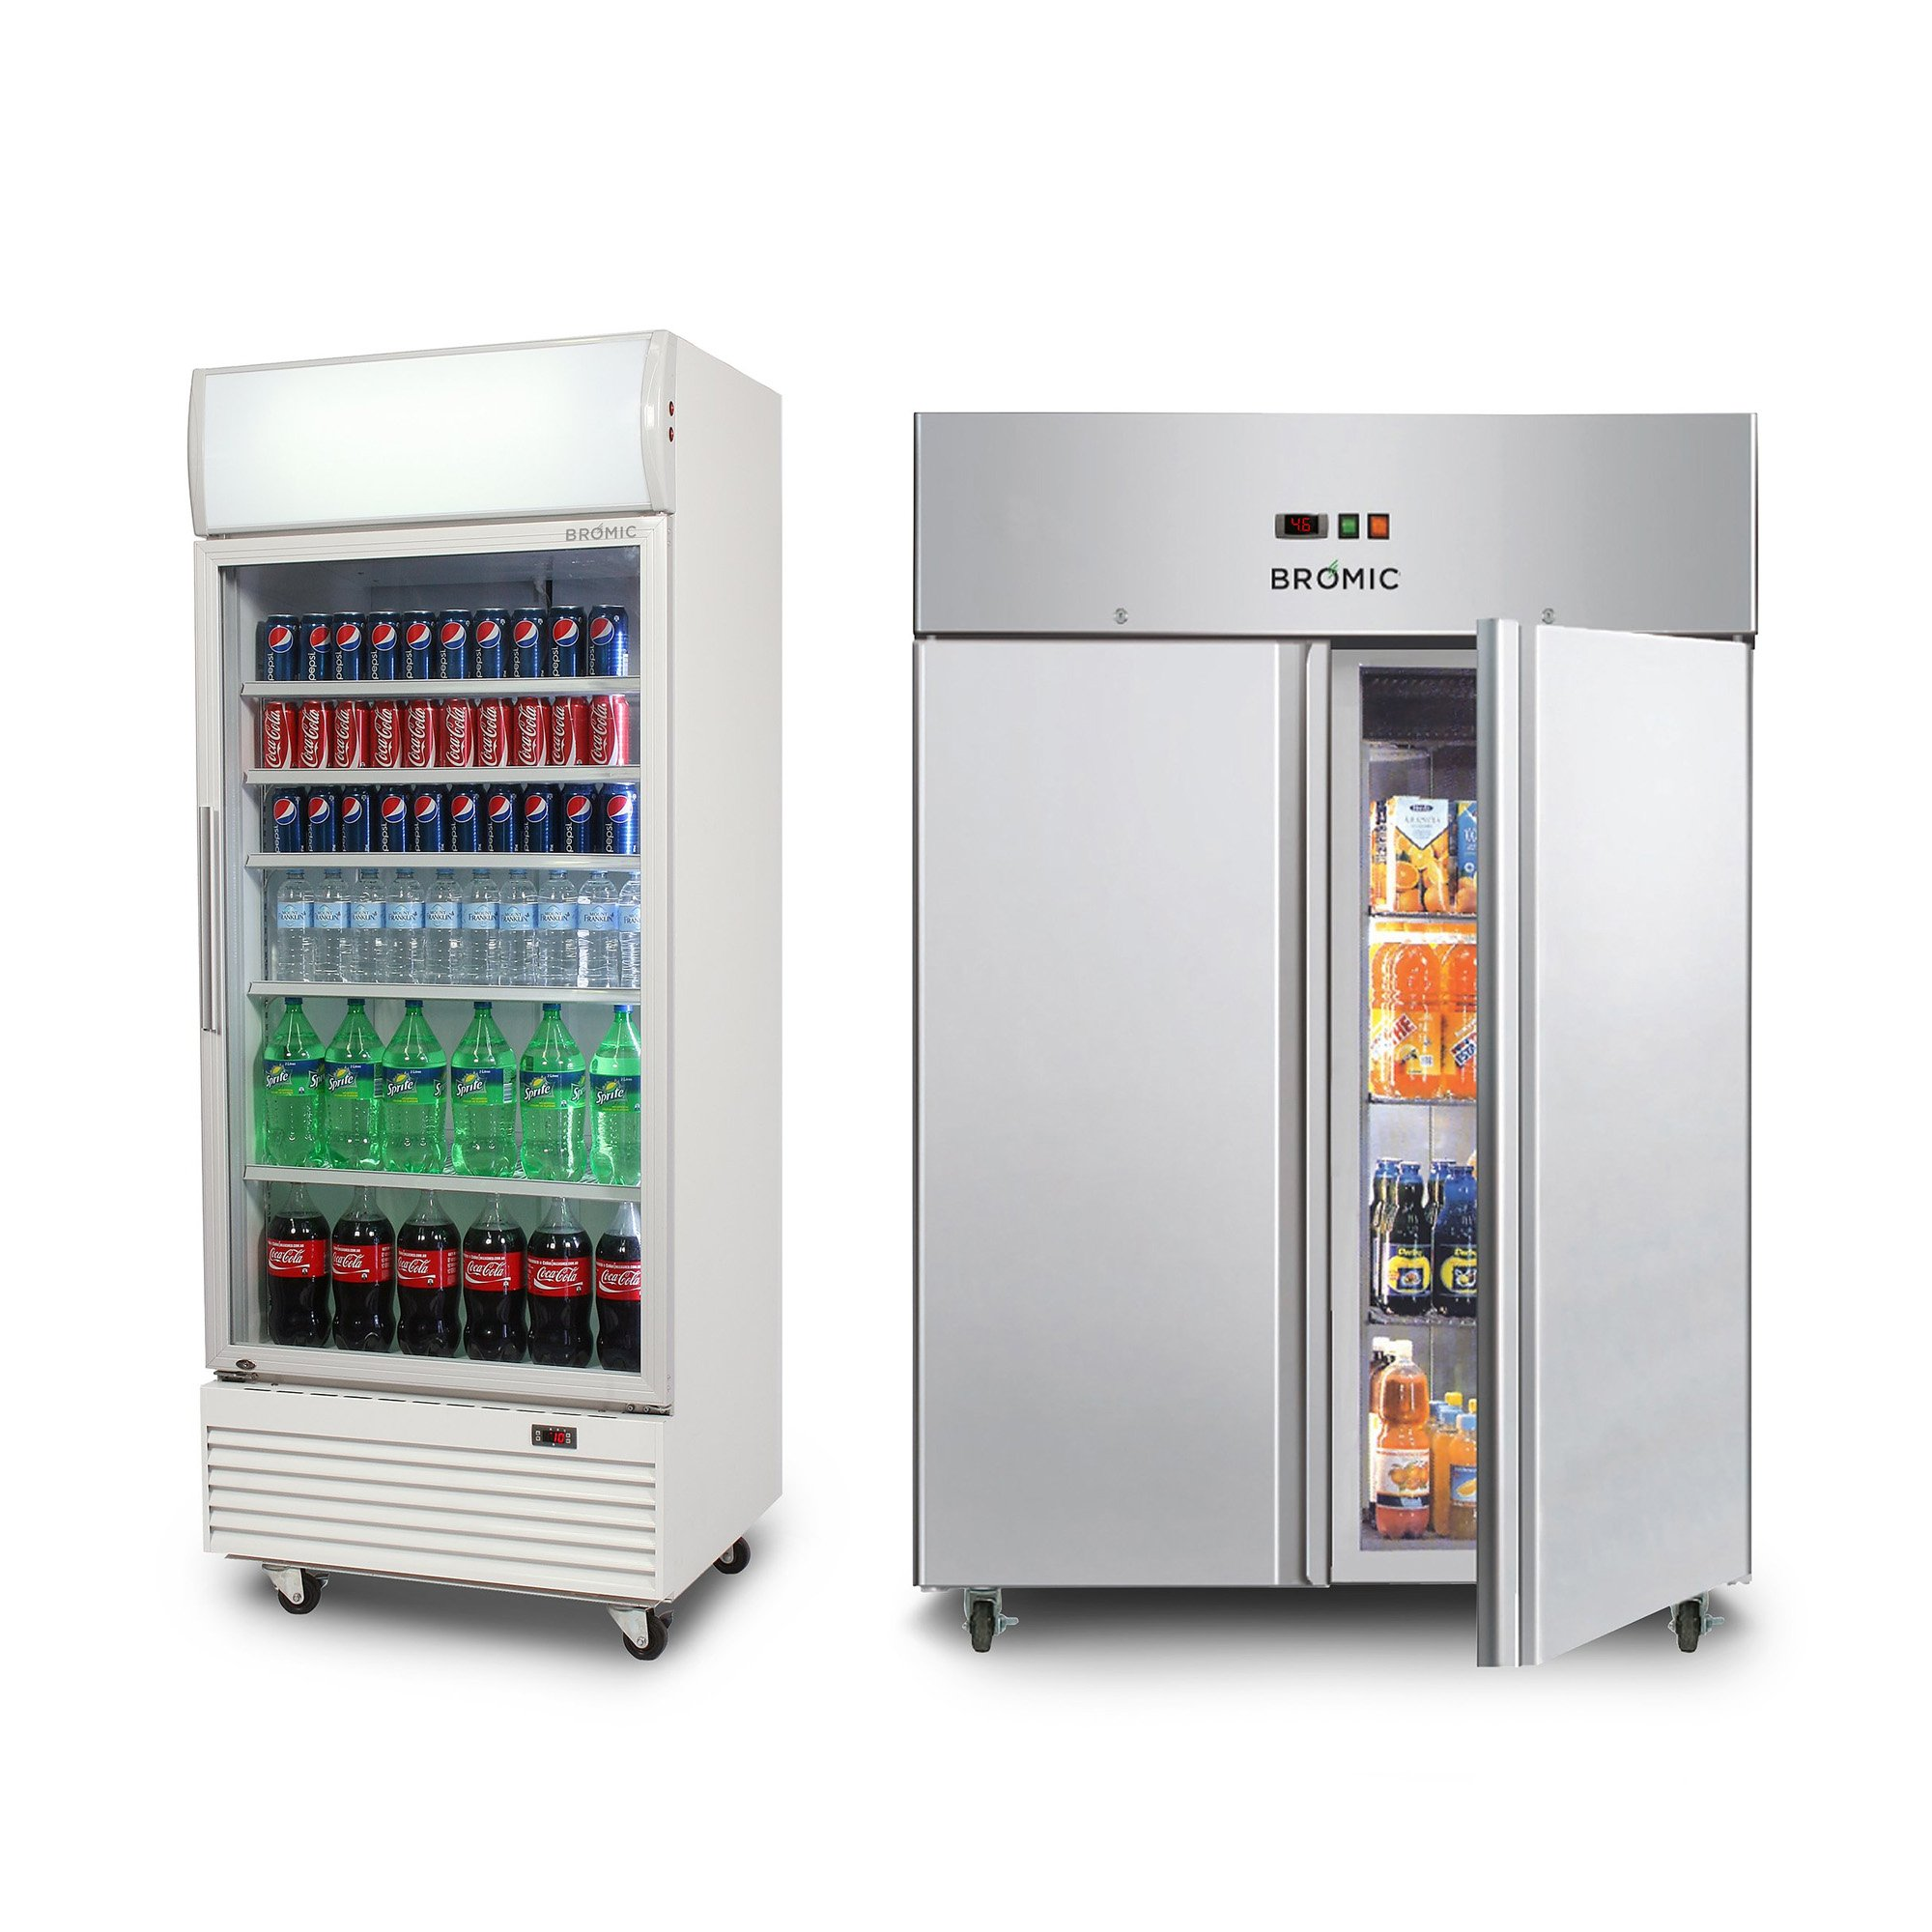 VERTICAL DISPLAY STORAGE UPRIGHT FRIDGES